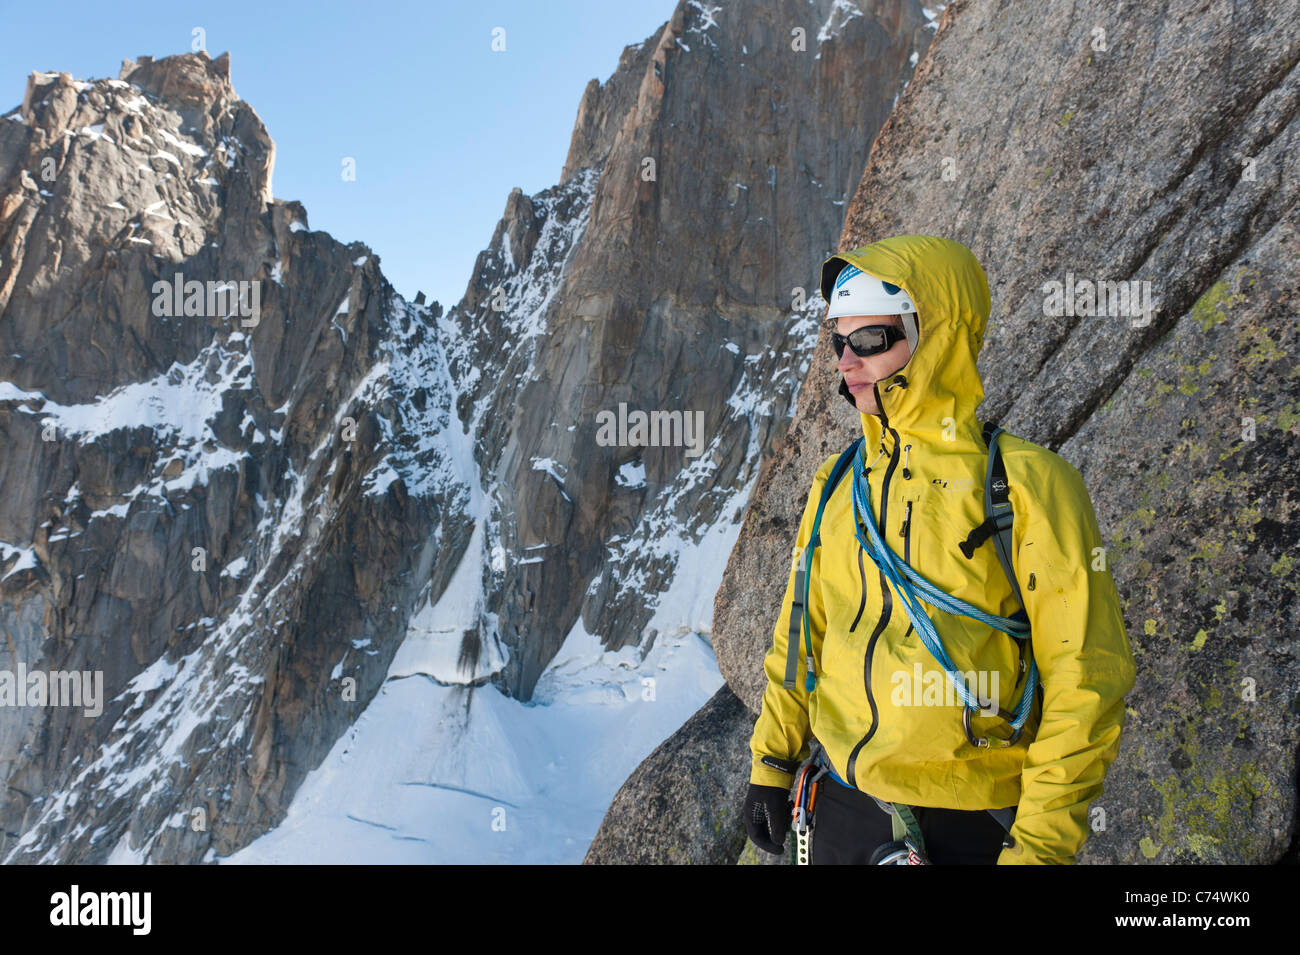 A rock climber abseiling down Pyramide du Tacul in Chamonix, France Stock Photo